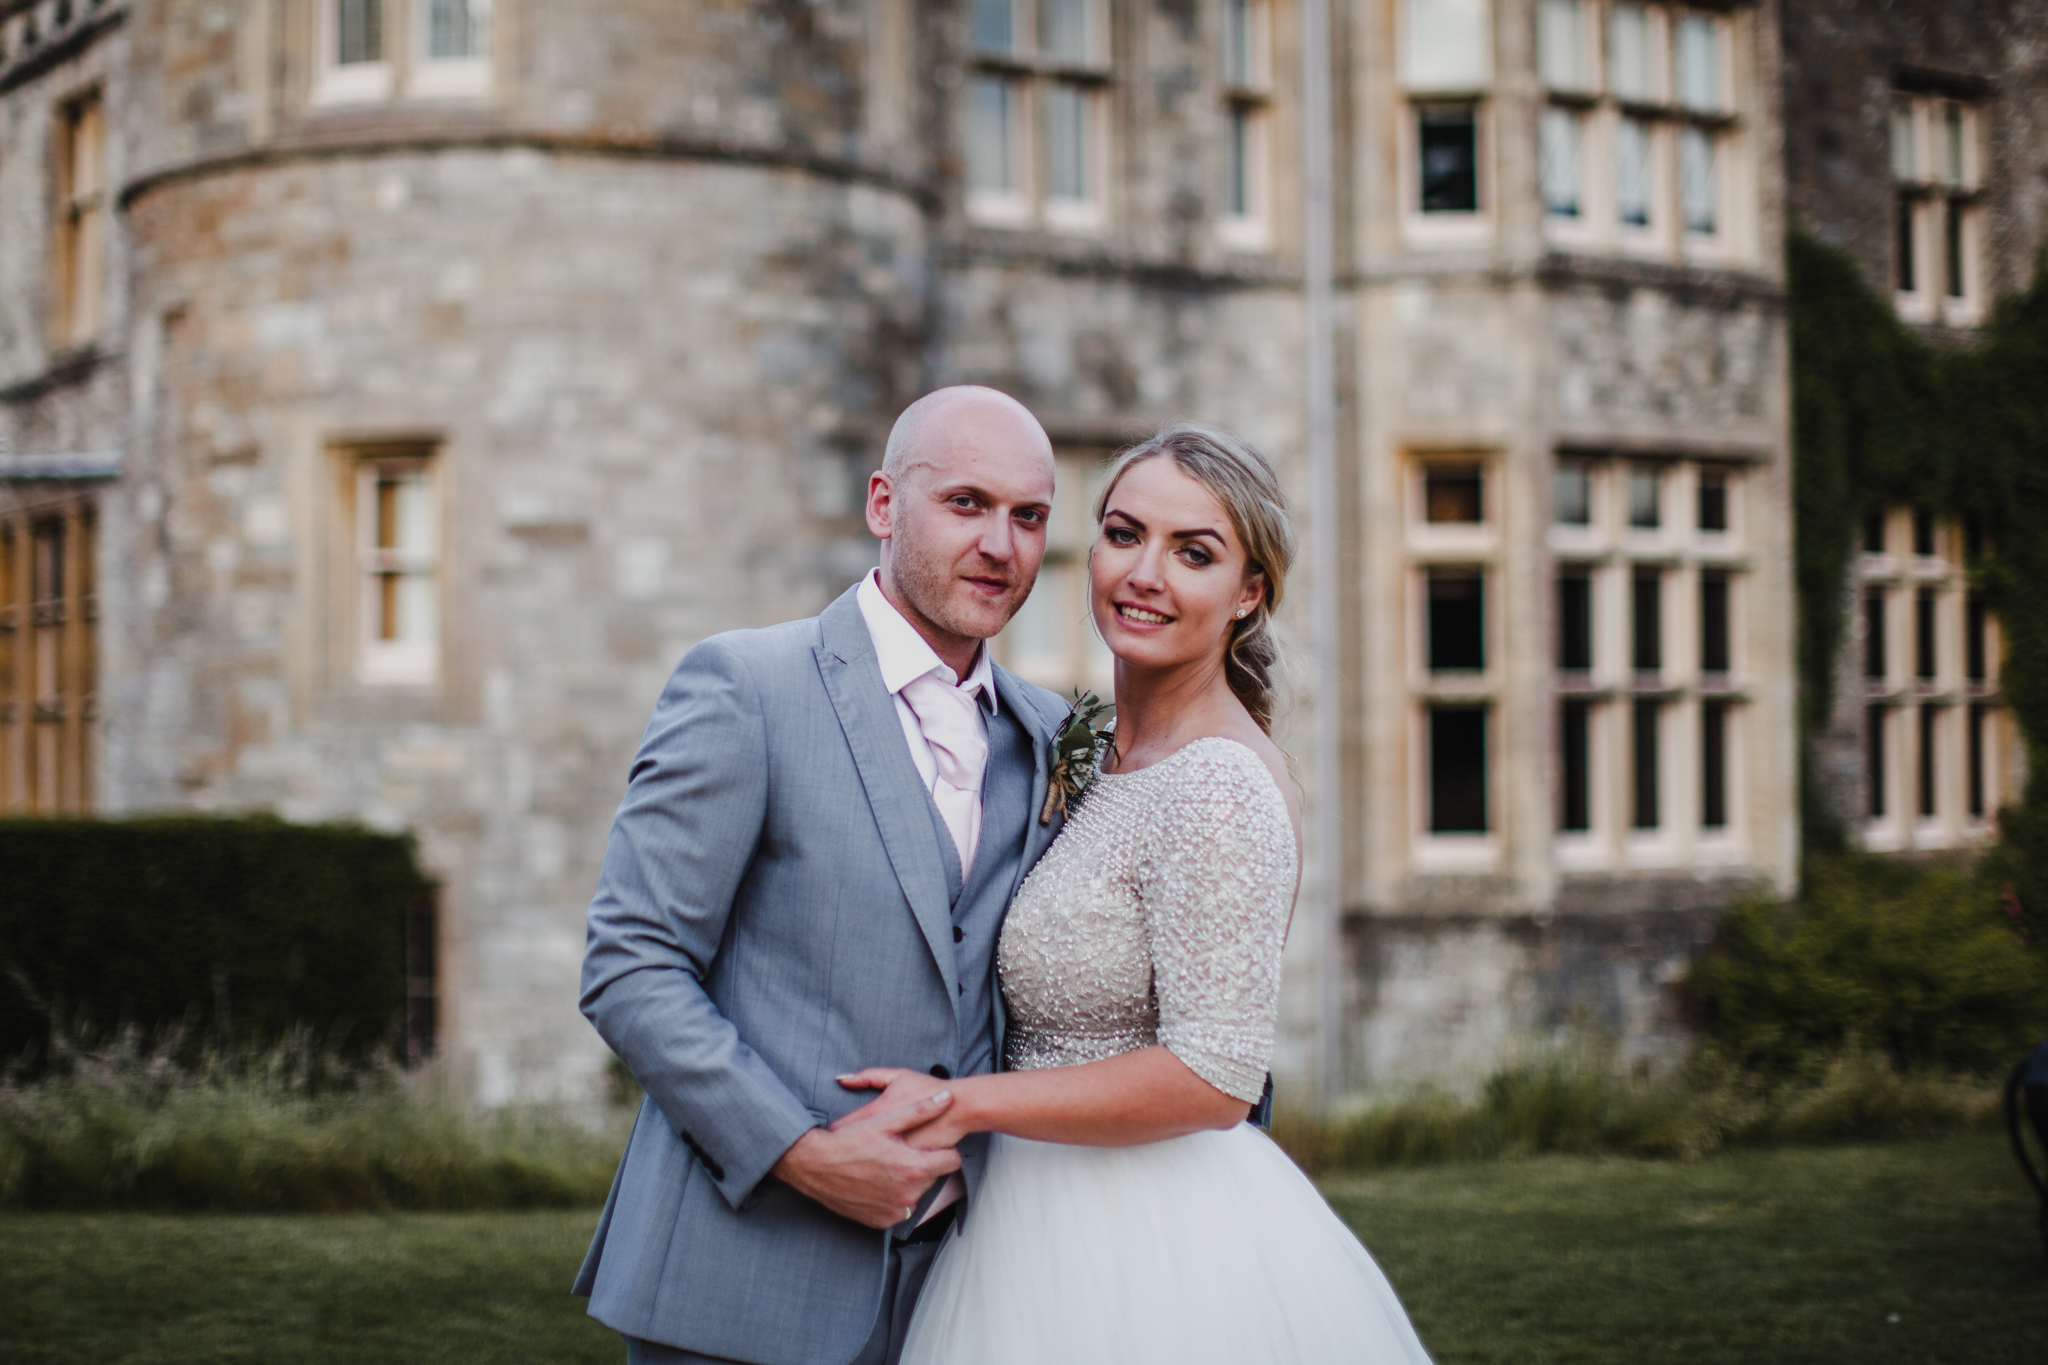 Bride and groom smiling in front of a castle